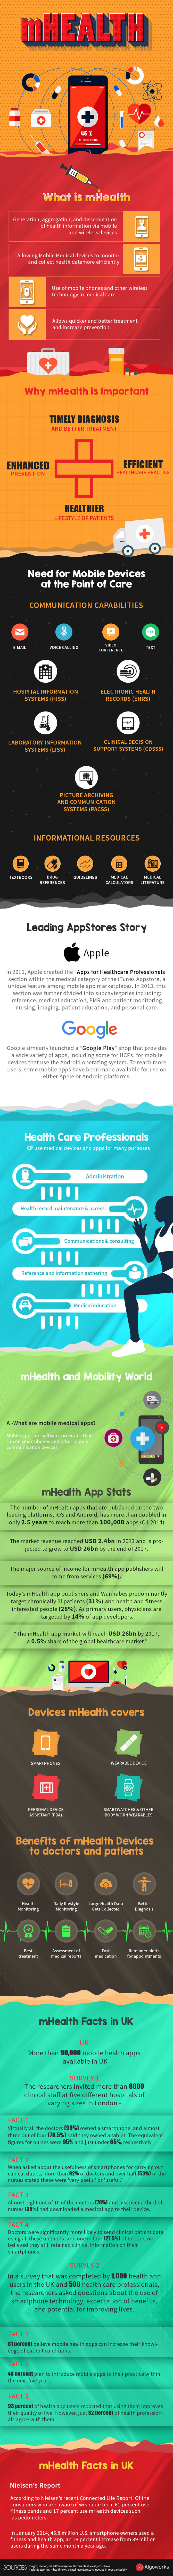 All about mHealth | An Infographic